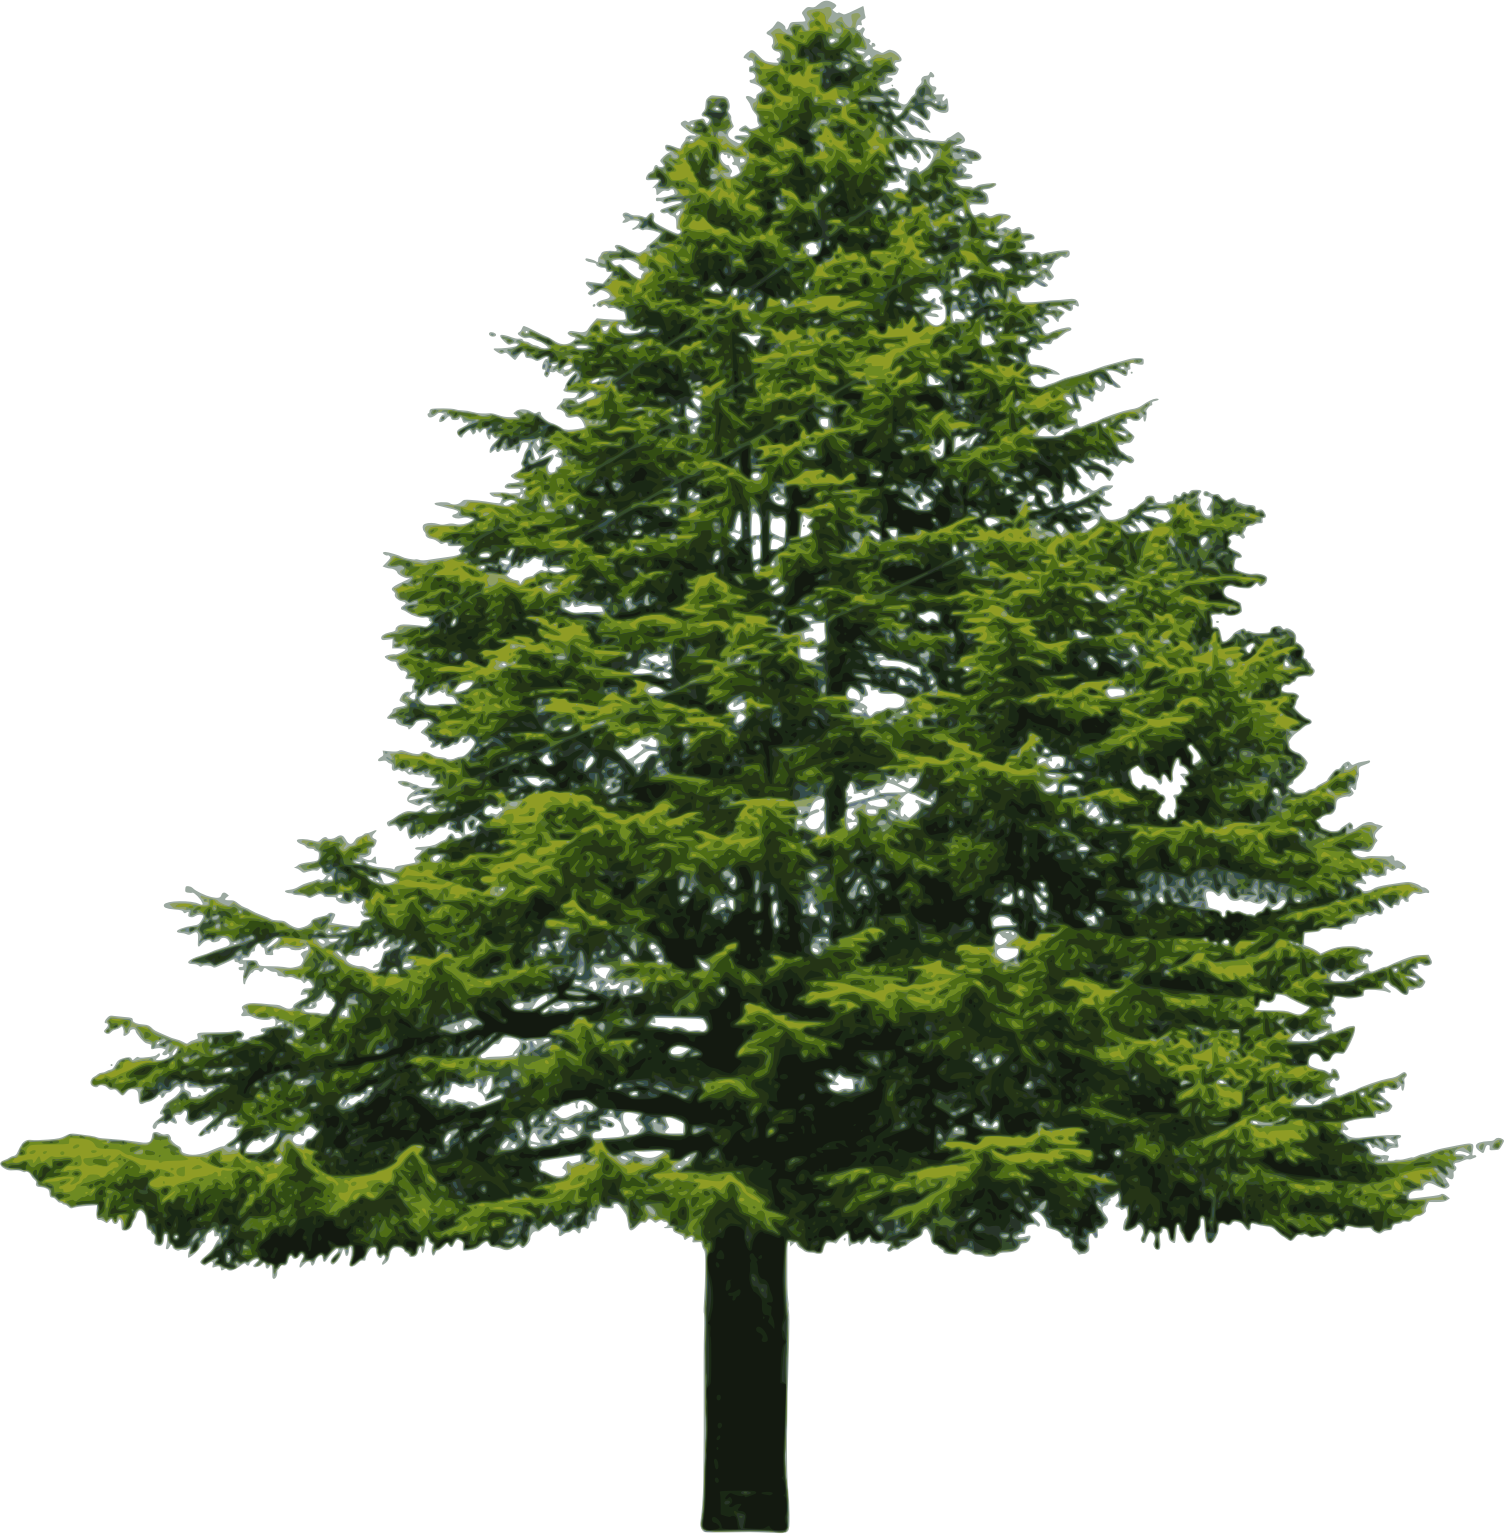 Douglas Fir Trees clipart #5, Download drawings